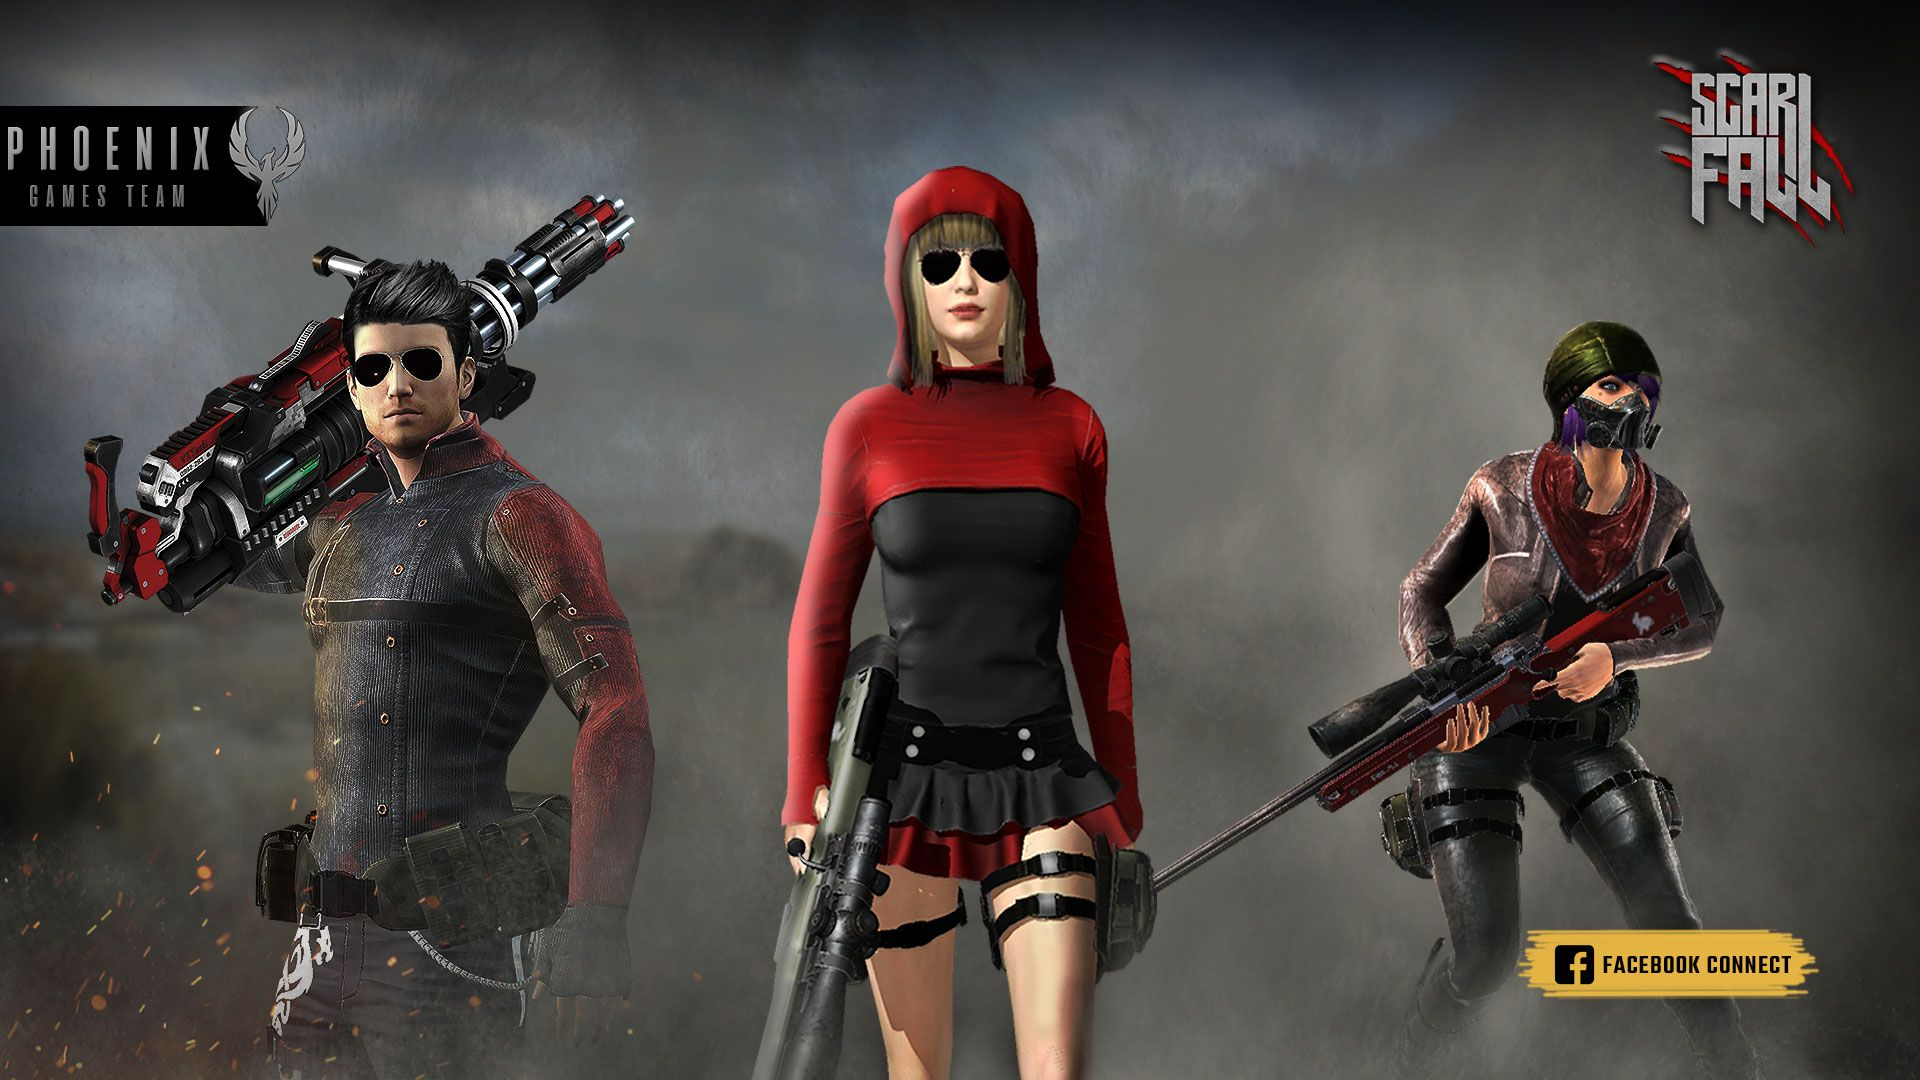 ScarFall The Battle Royale Best multiplayer games with